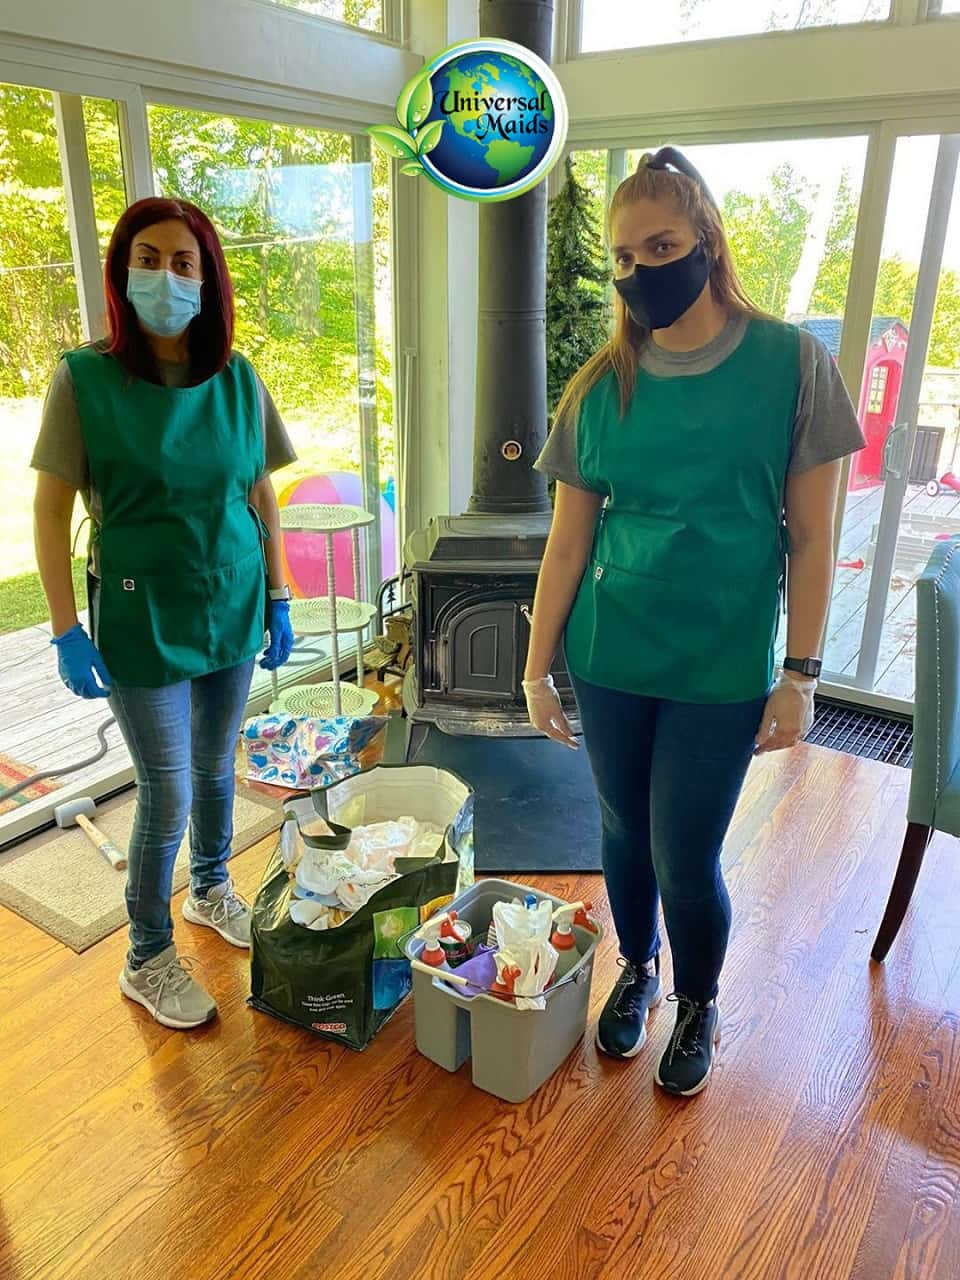 Maids and cleaning equipment